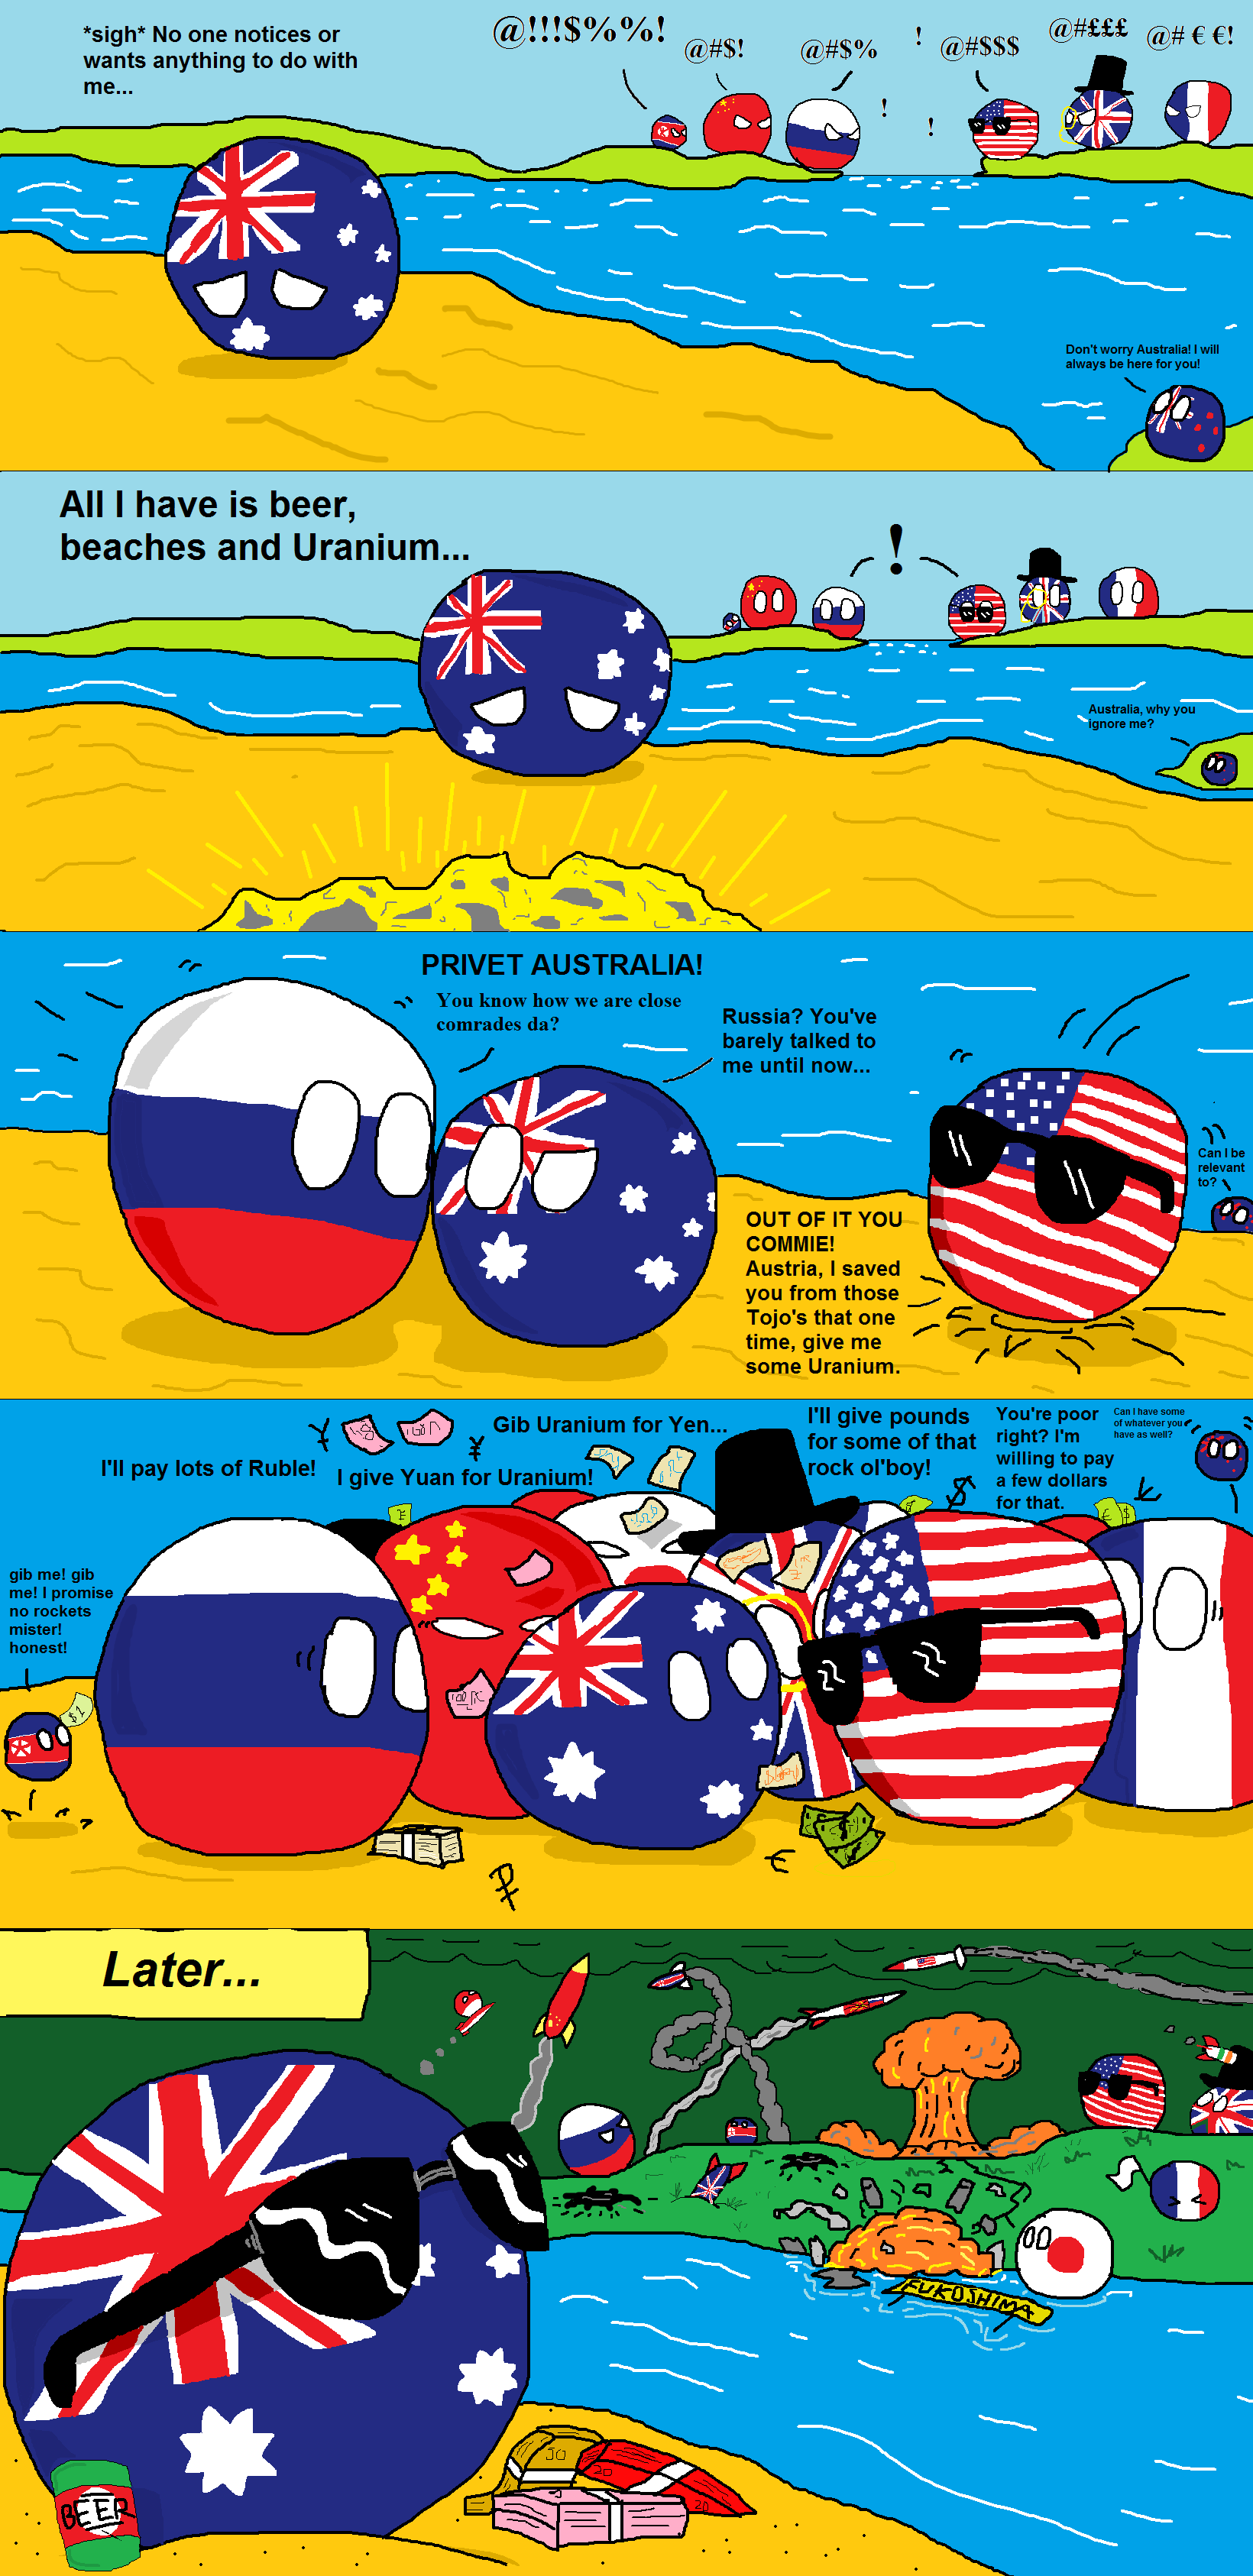 Why The Usa Is So Oil Hungry Polandball